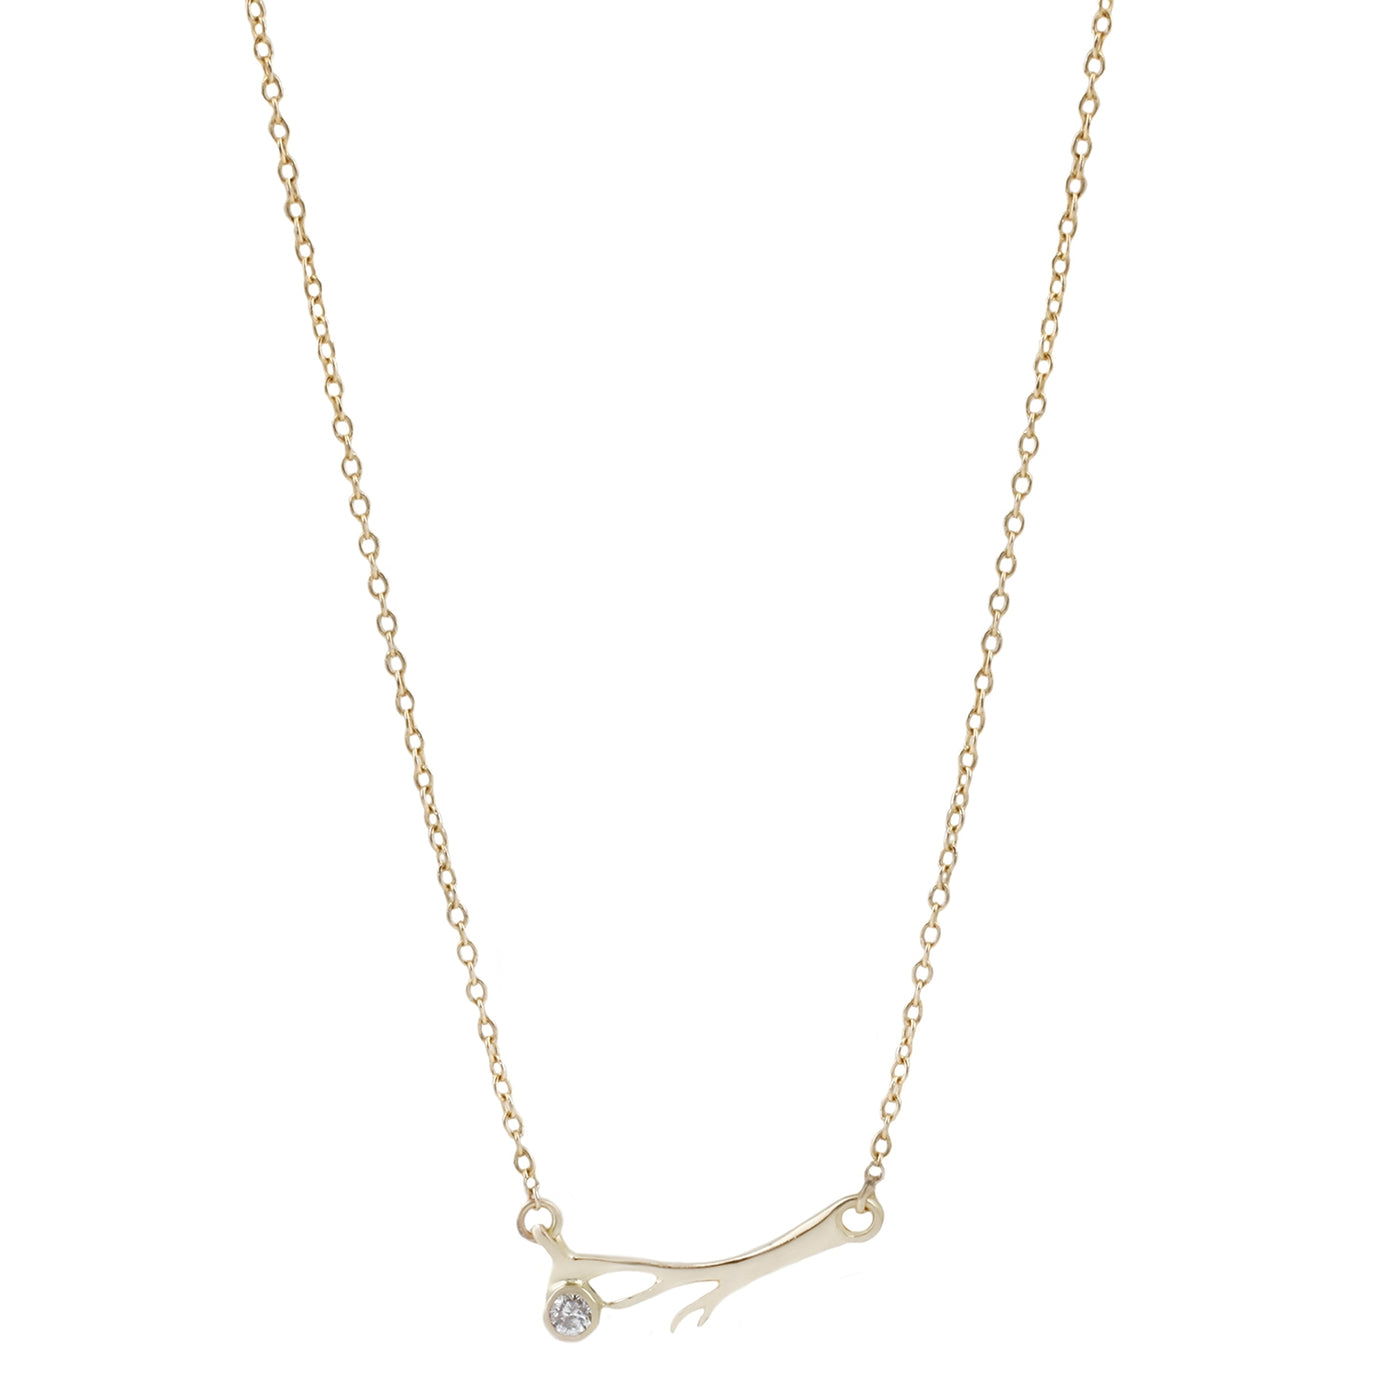 Luana Coonen Autumn Dewdrop Necklace